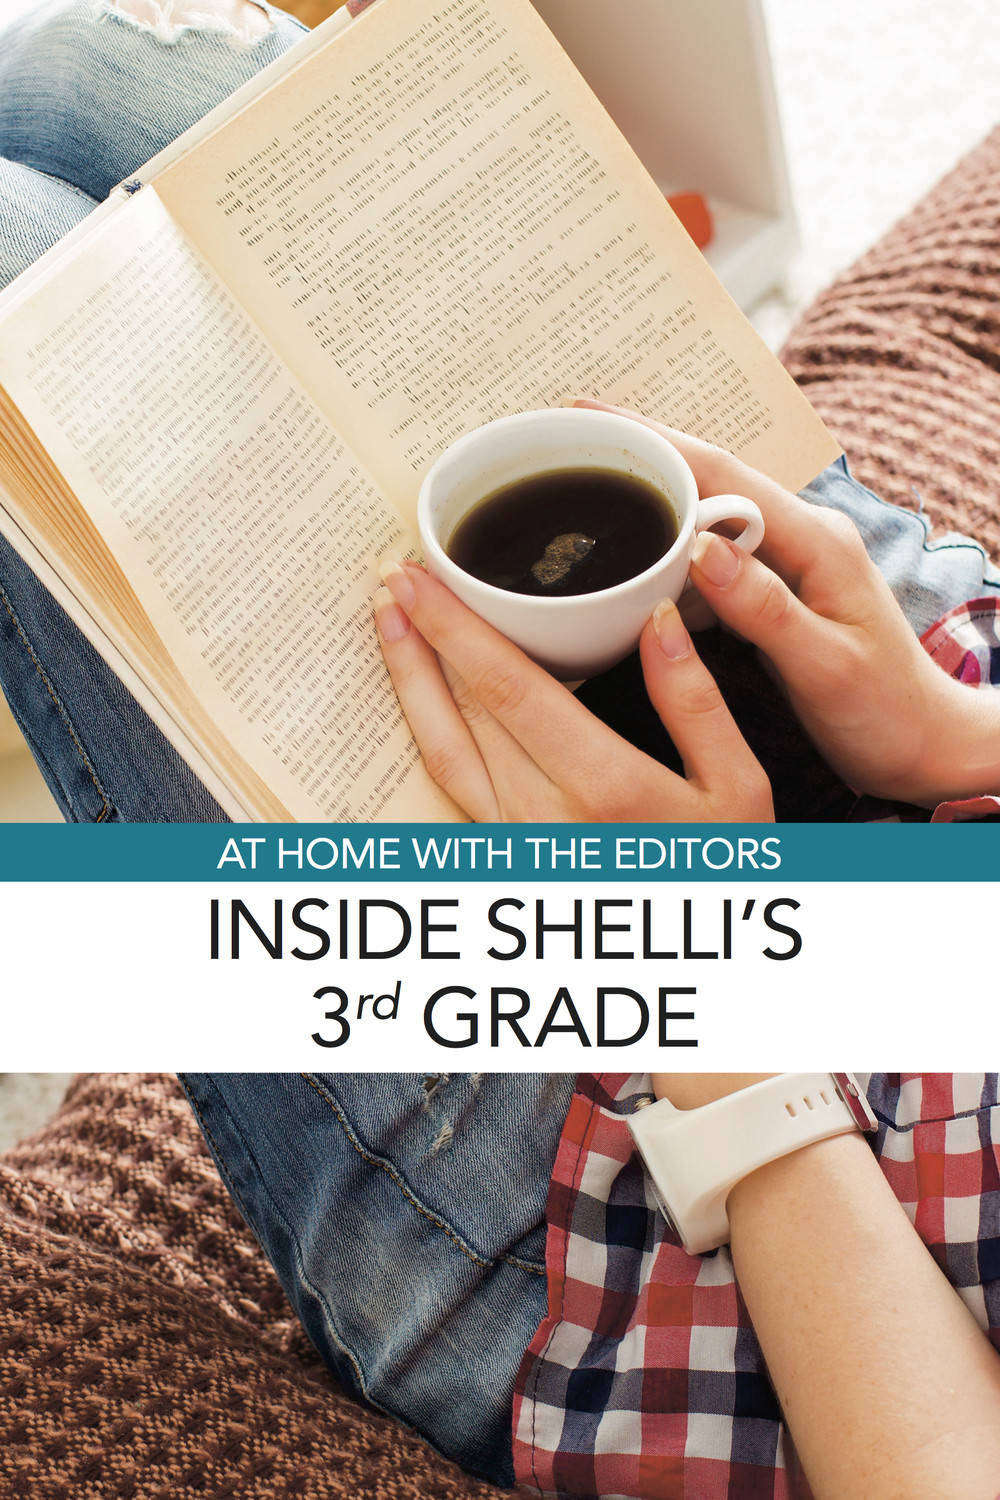 Shelli's curriculum and resources for her 3rd grade homeschool